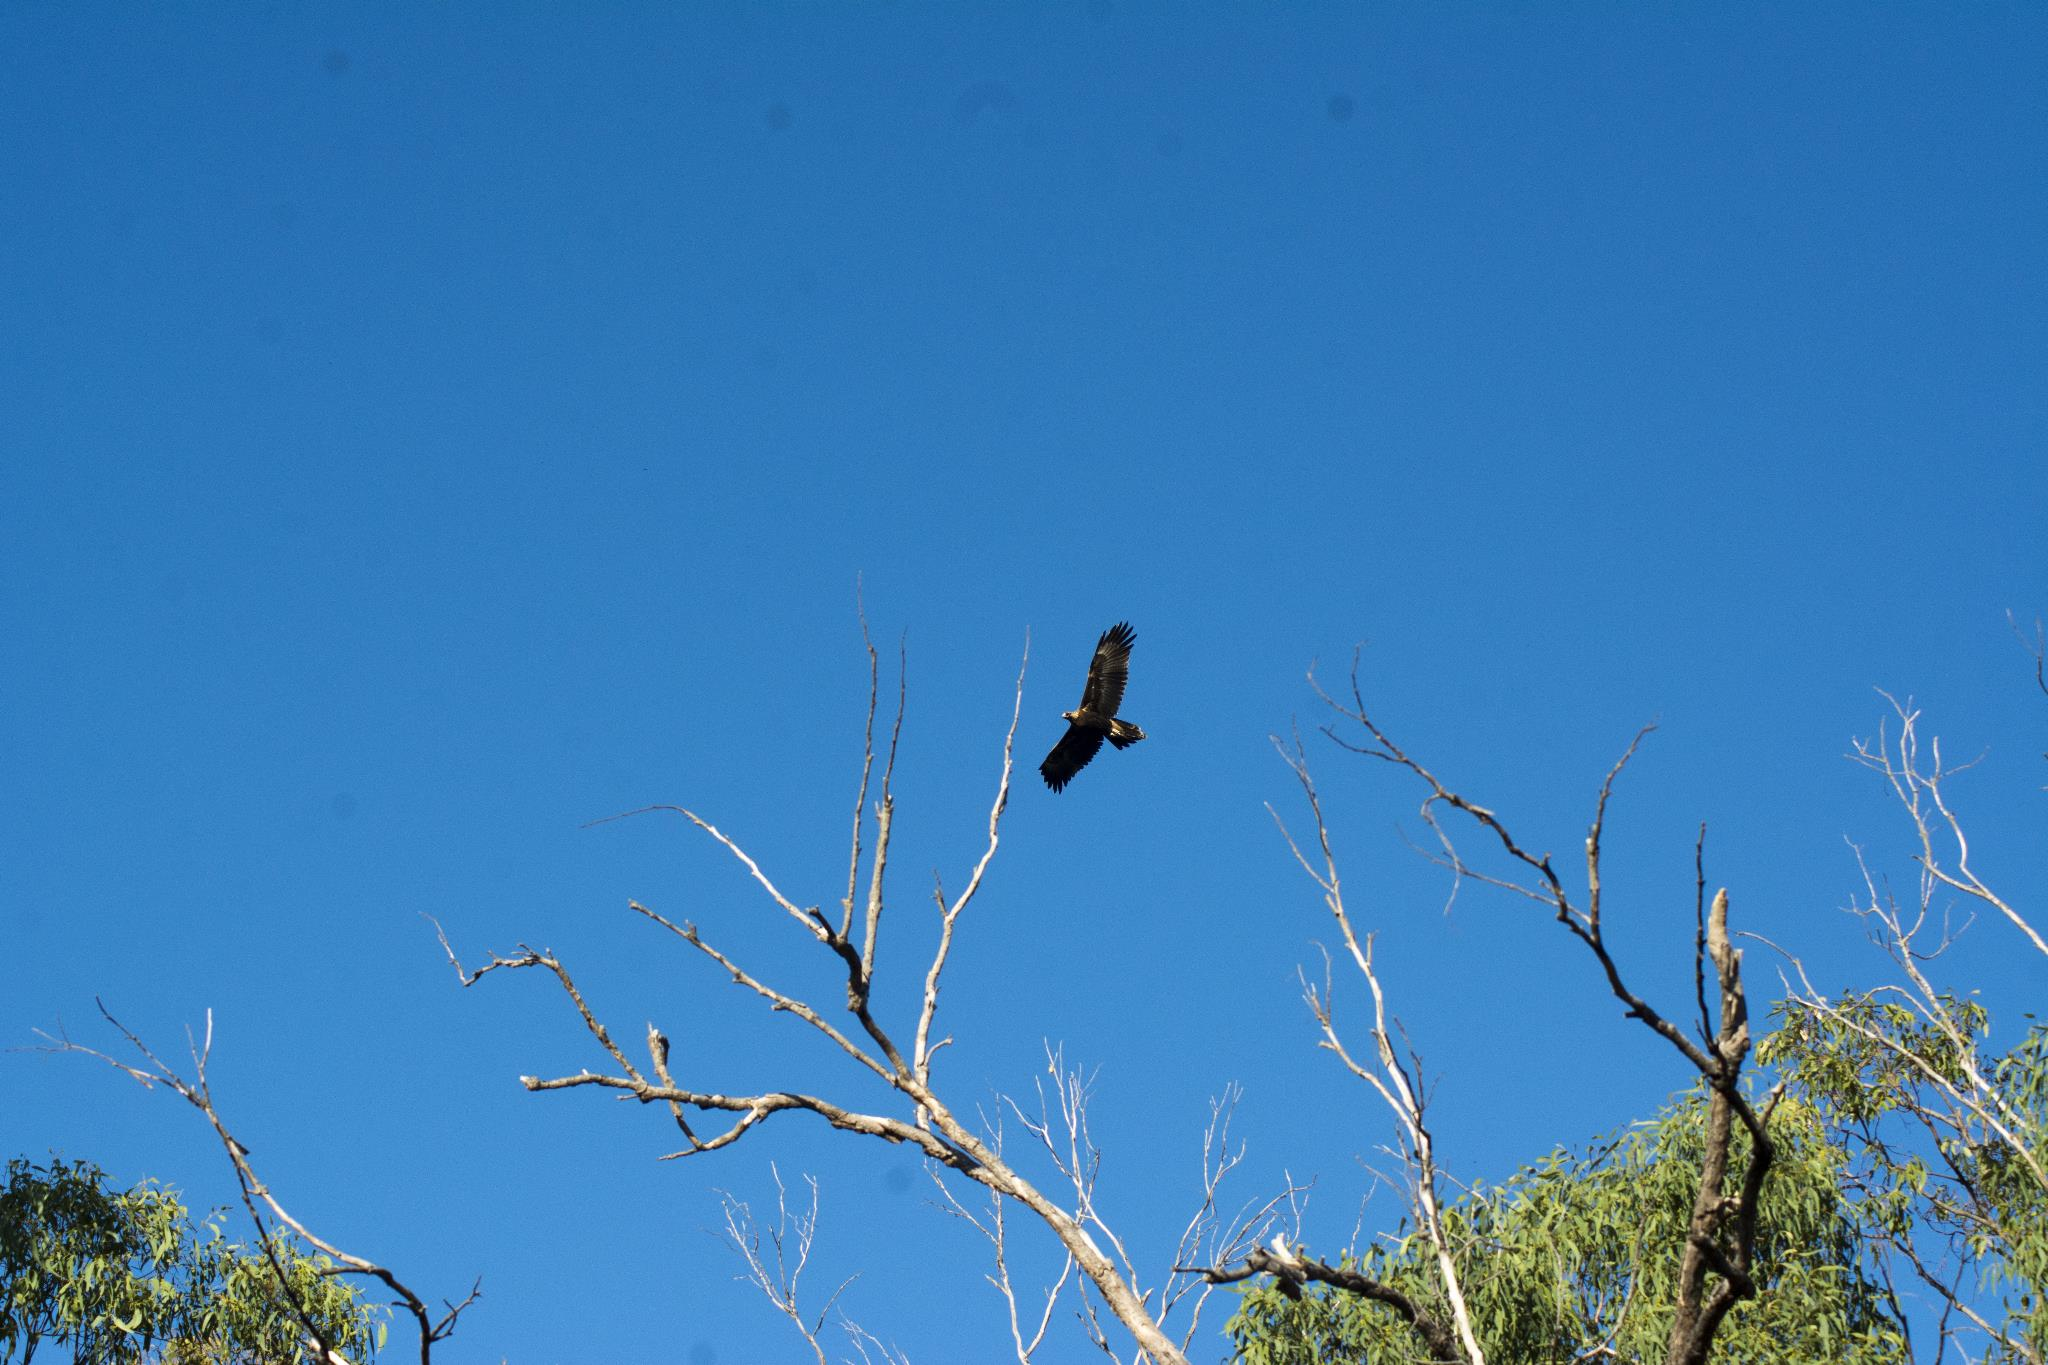 Wedge-tailed Eagle soaring close to the house